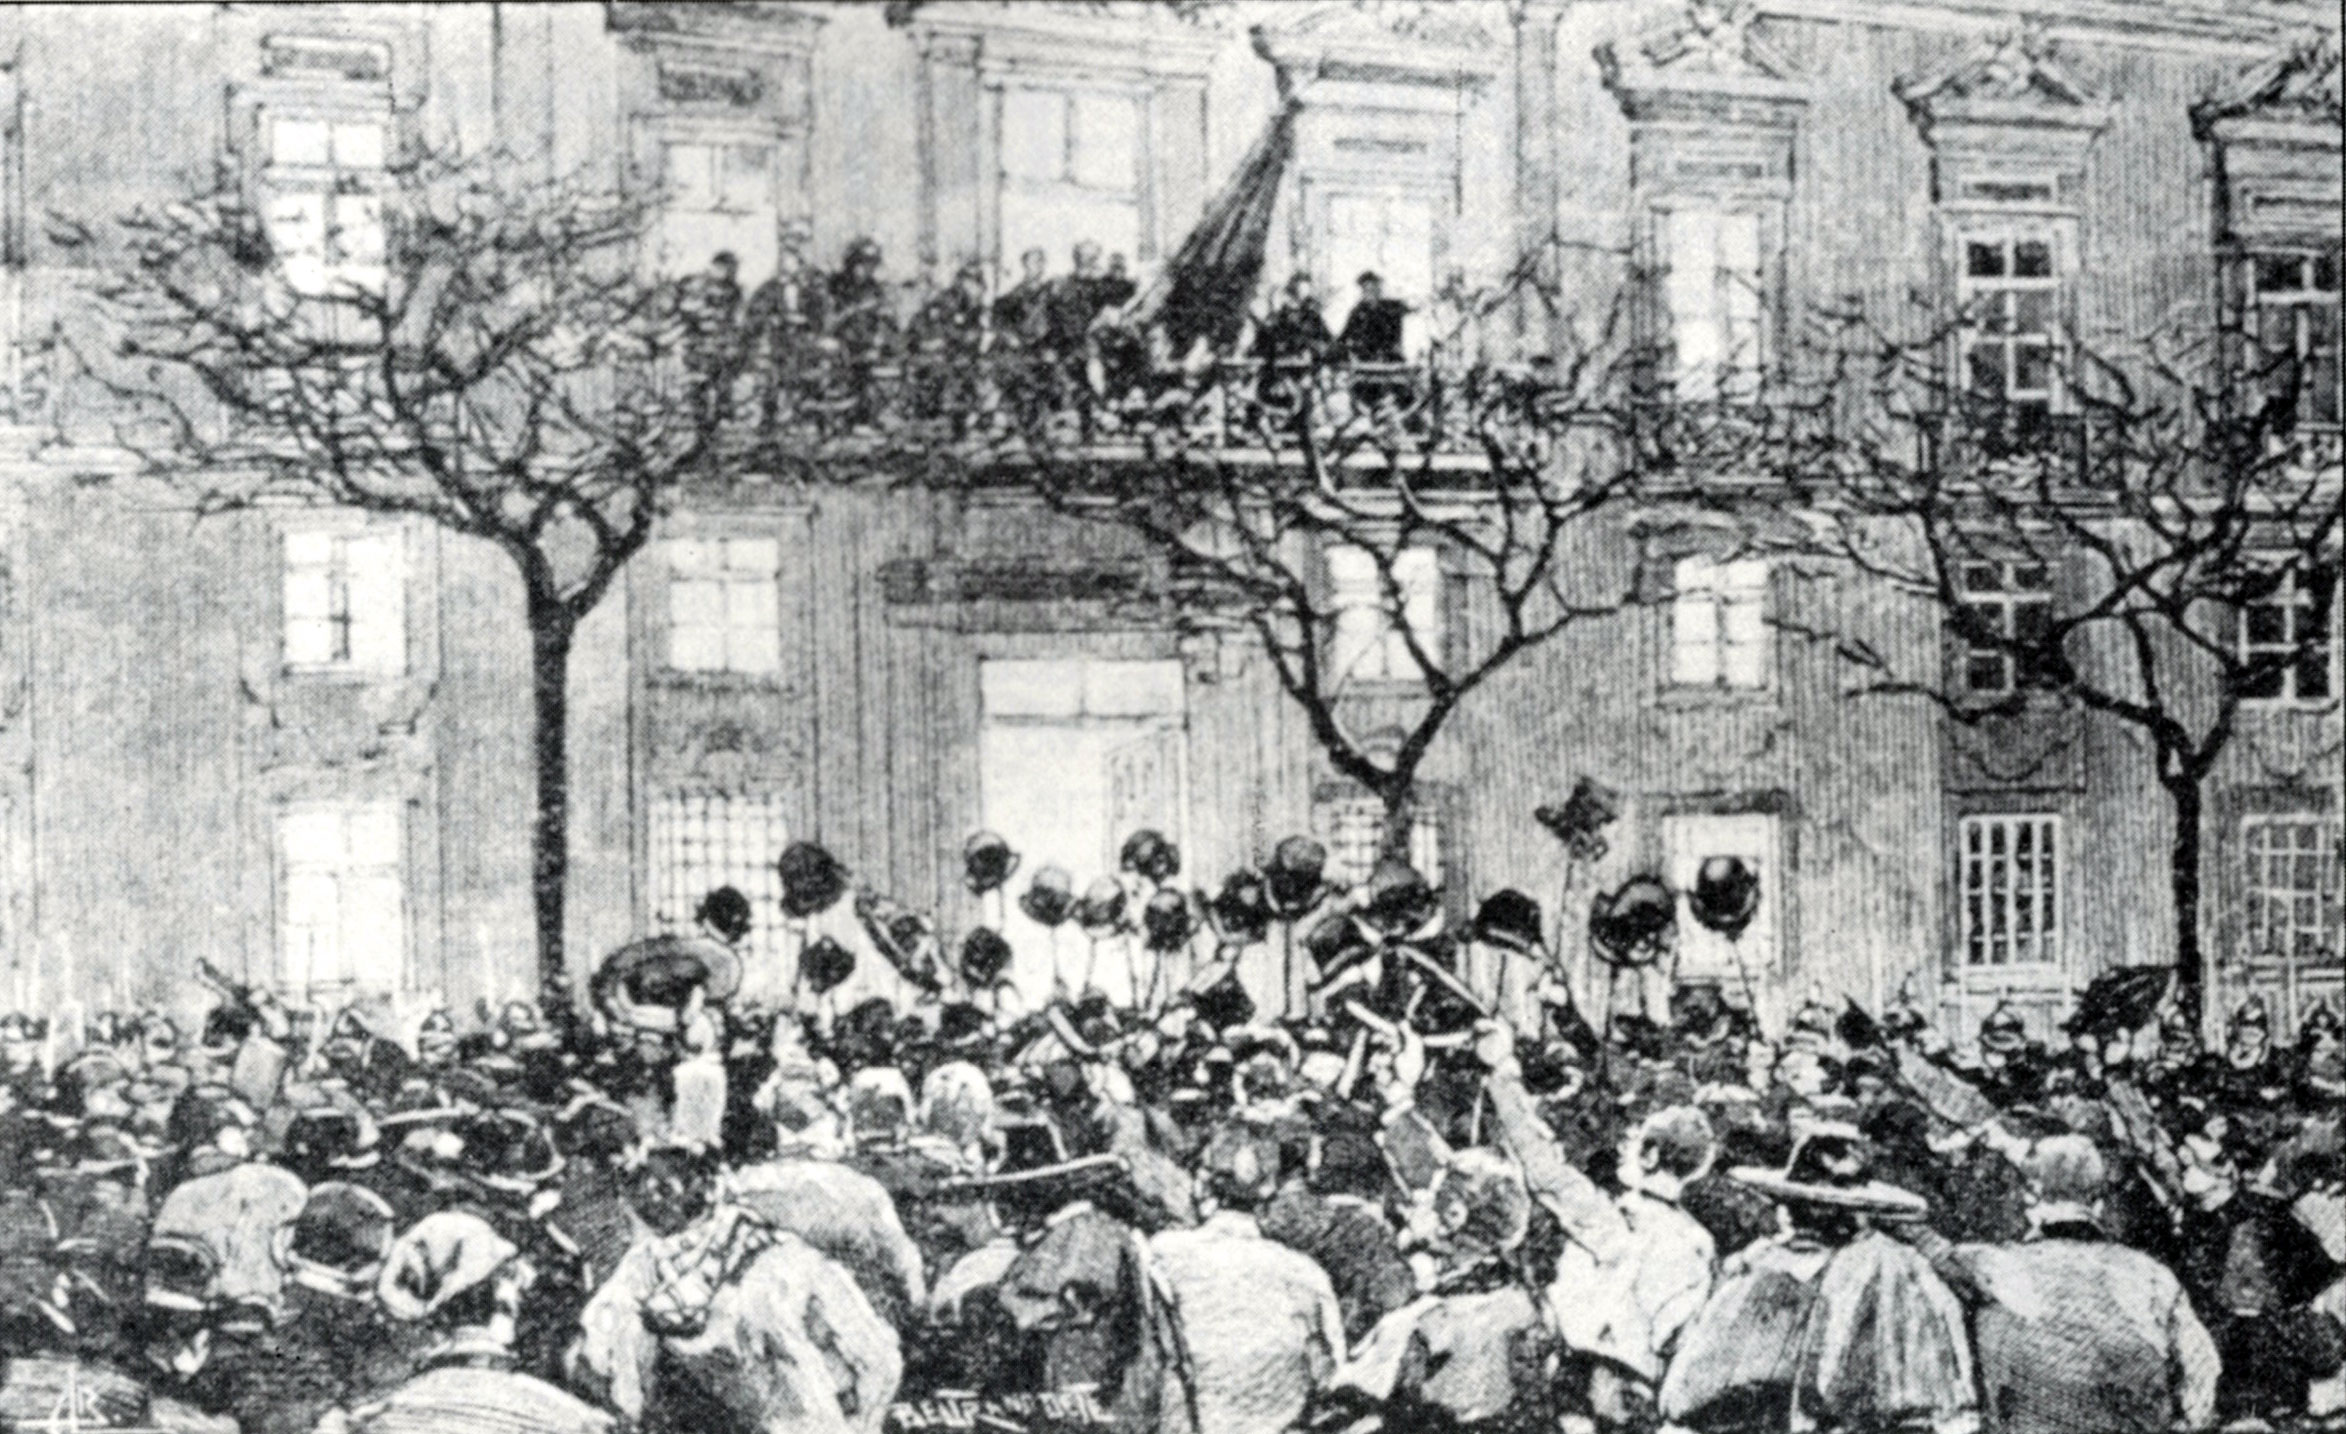 January 31, 1891 – A revolution that ended in bloodshed – Hey Porto